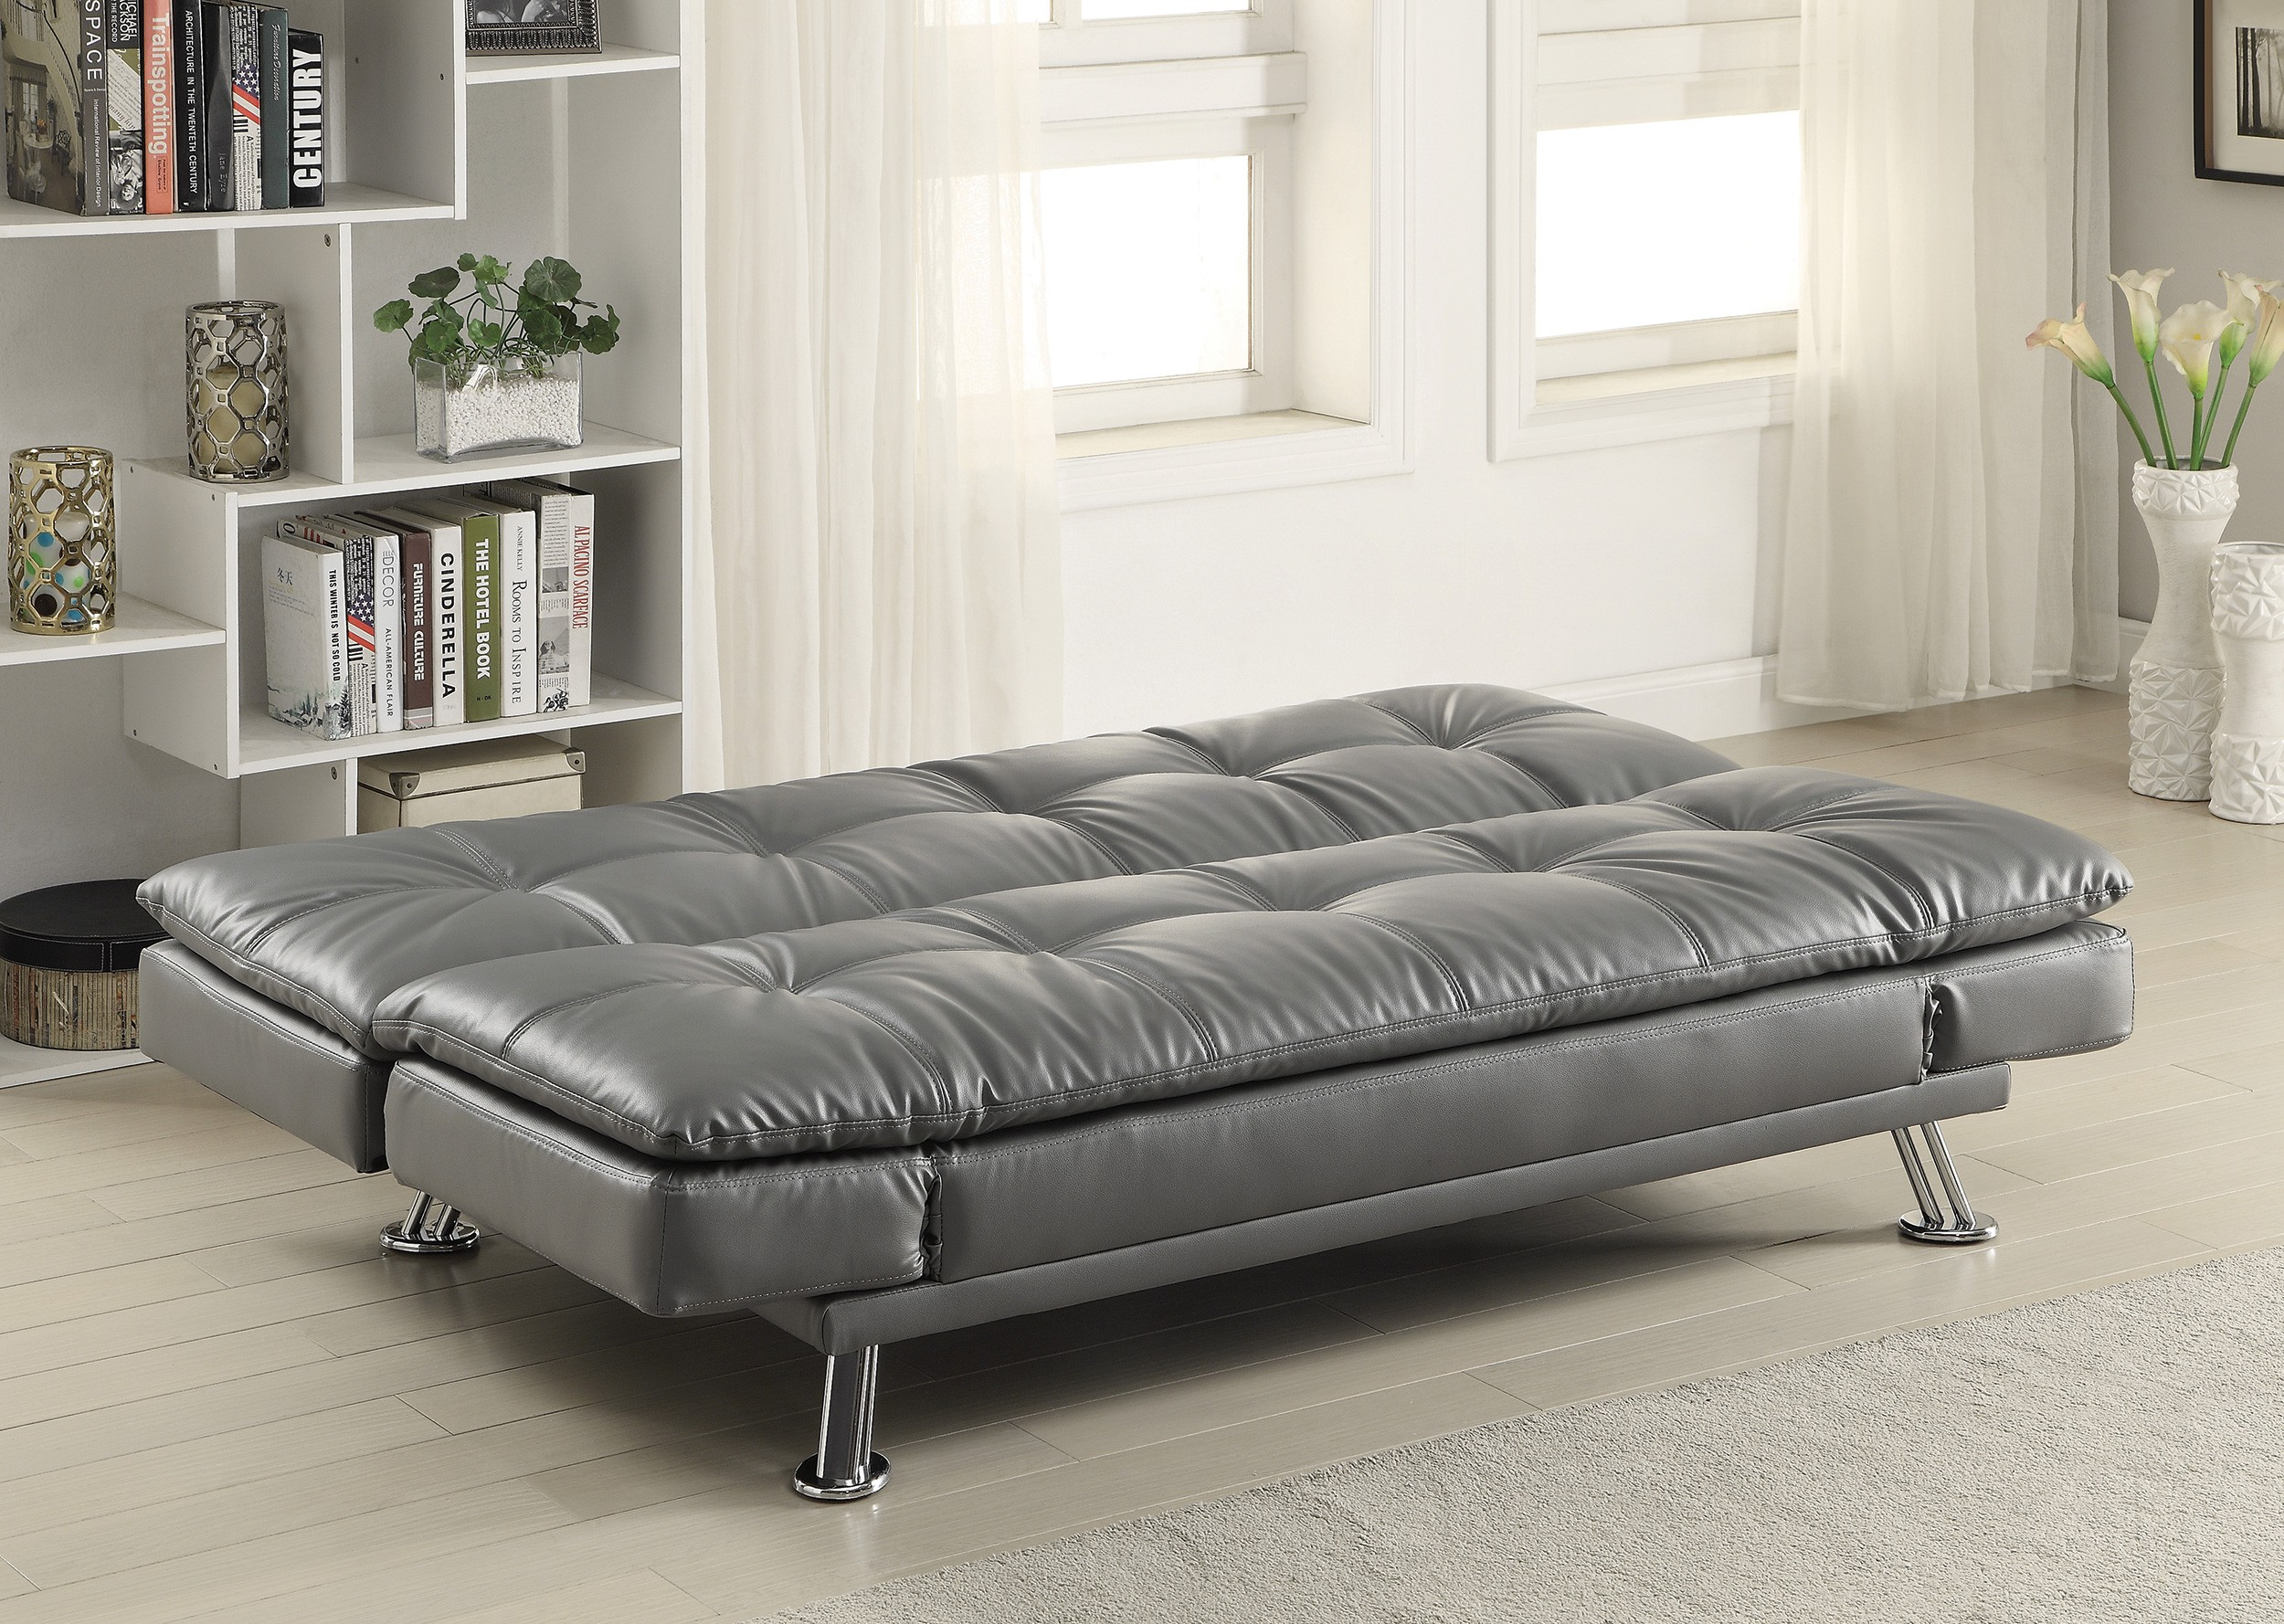 Sofas Just You Sofa Bed Grey With Available Matching Chaise And Storage